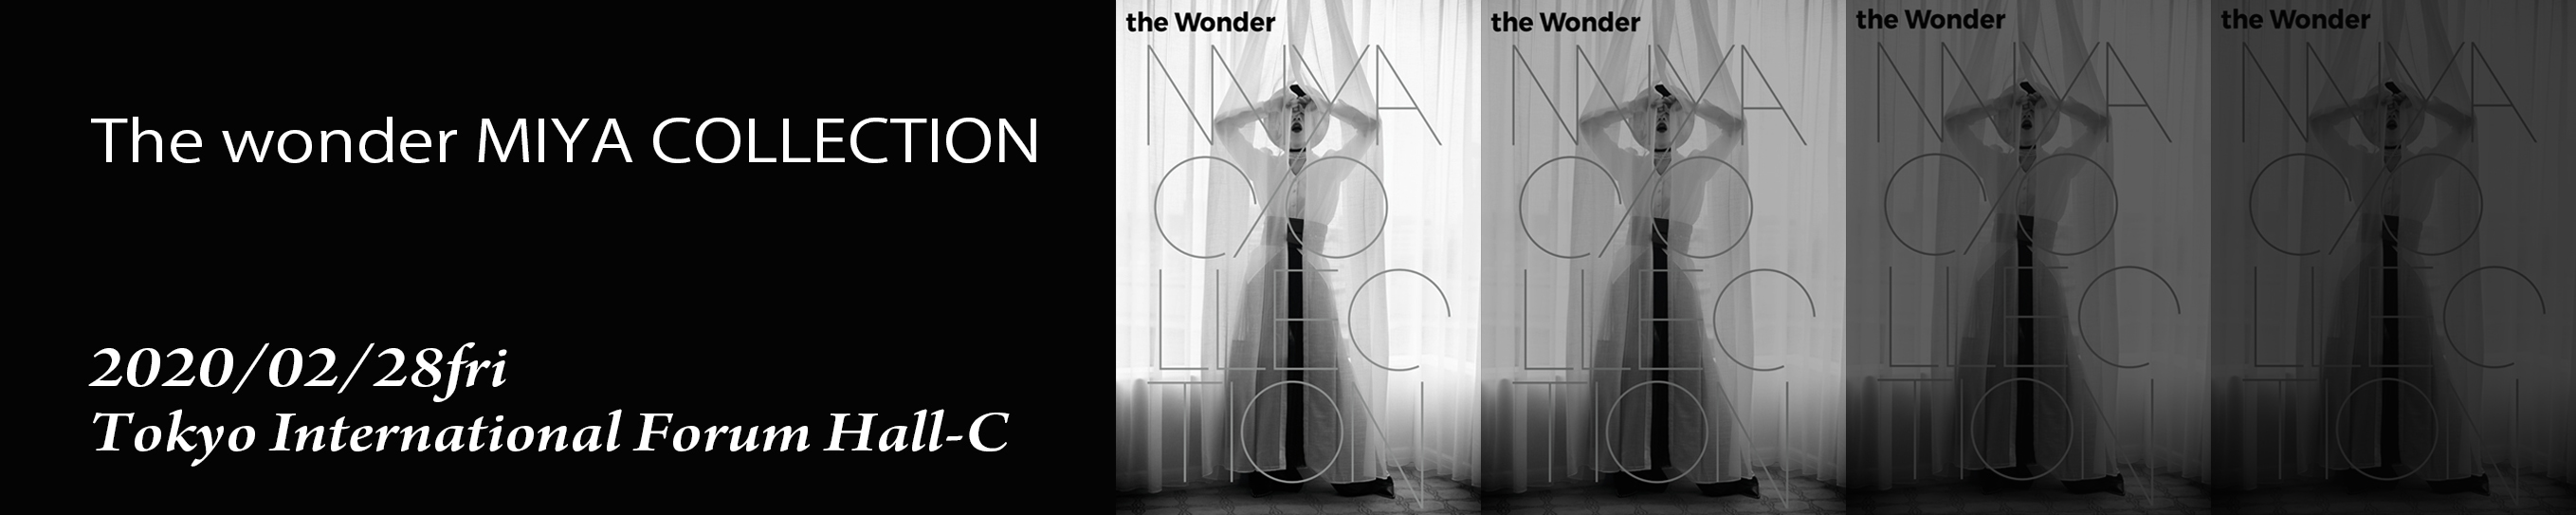 The wonder MIYA COLLECTIONバナー